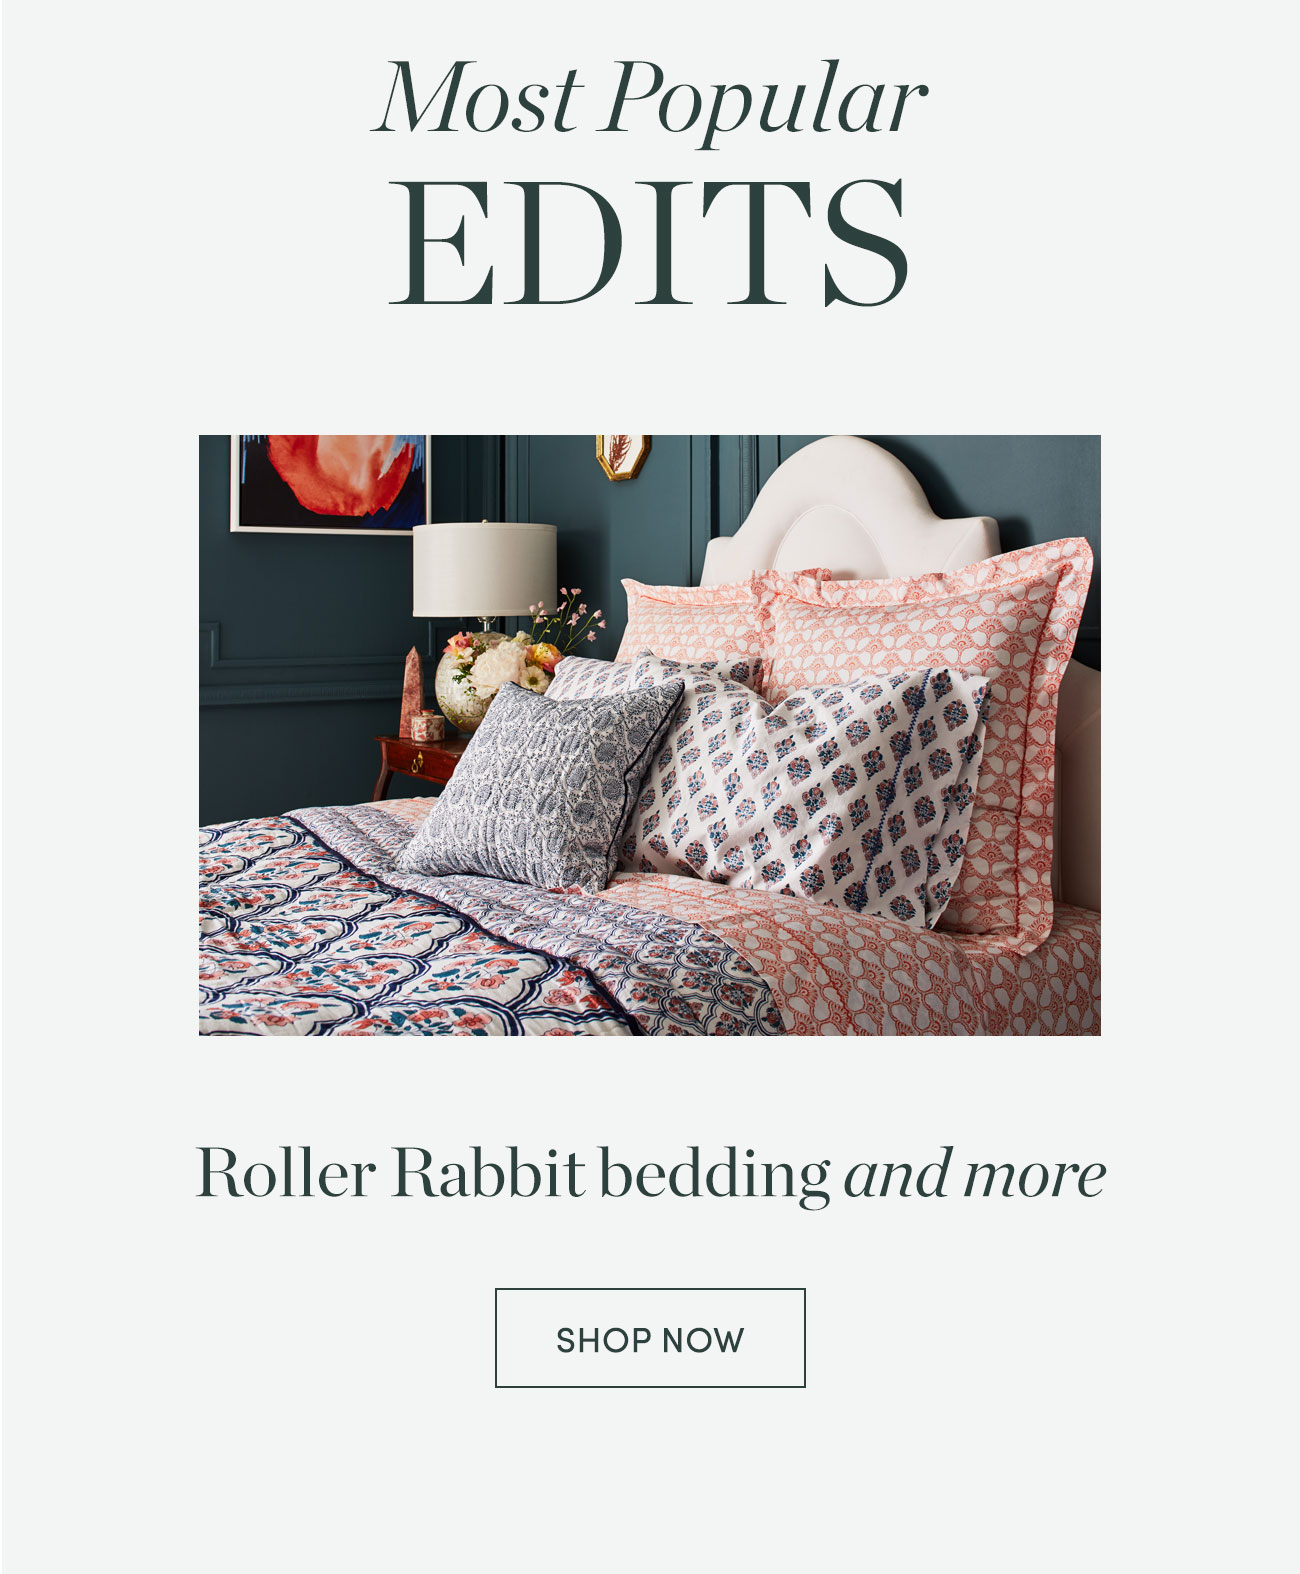 Roller Rabit bedding and more